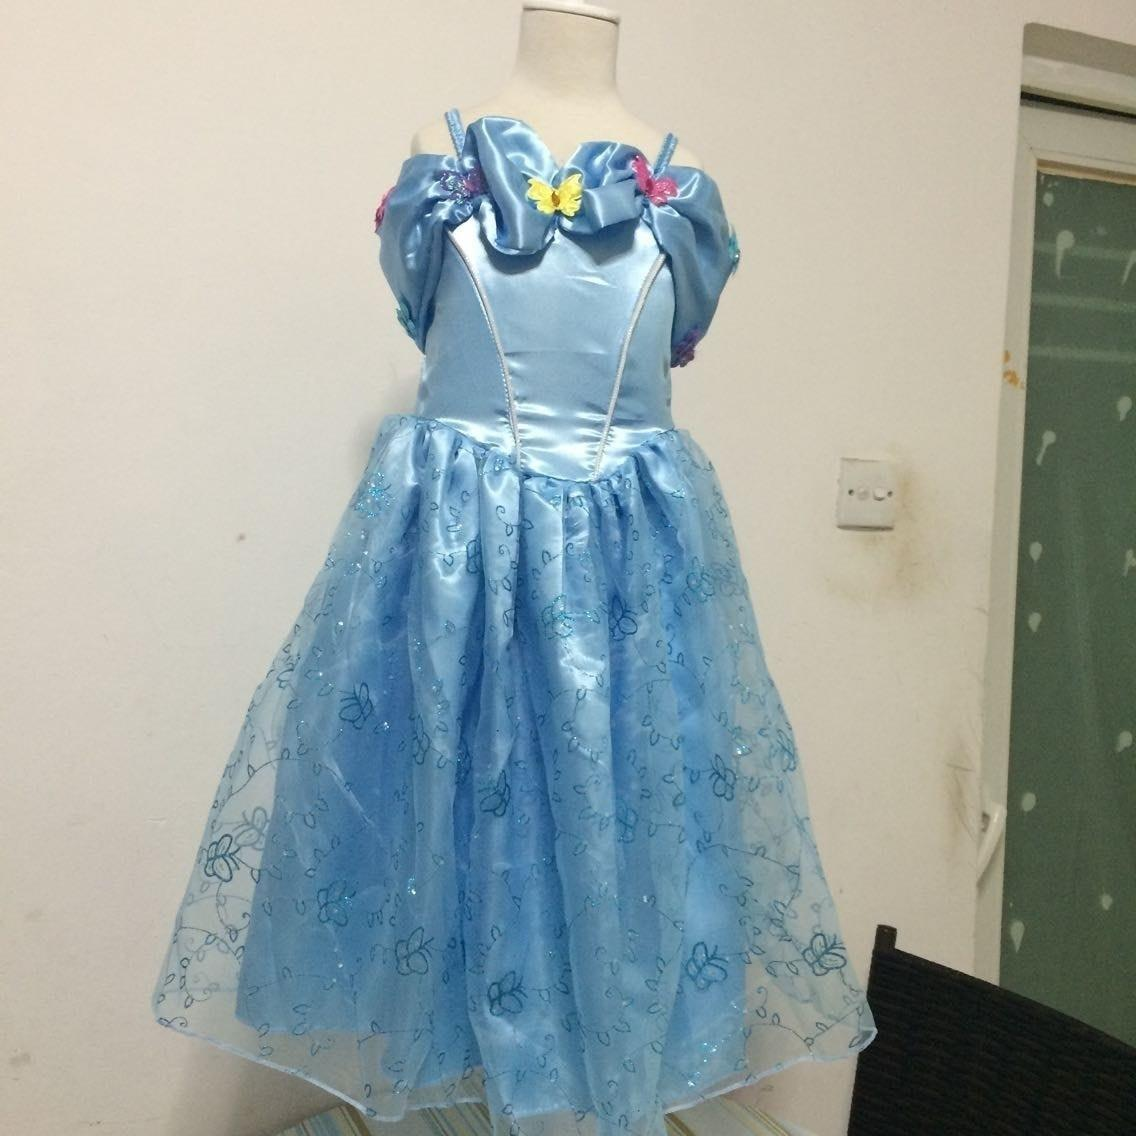 1ada51009 2019 2015 Newest Cinderella Dress For Kids Children Cinderella ...